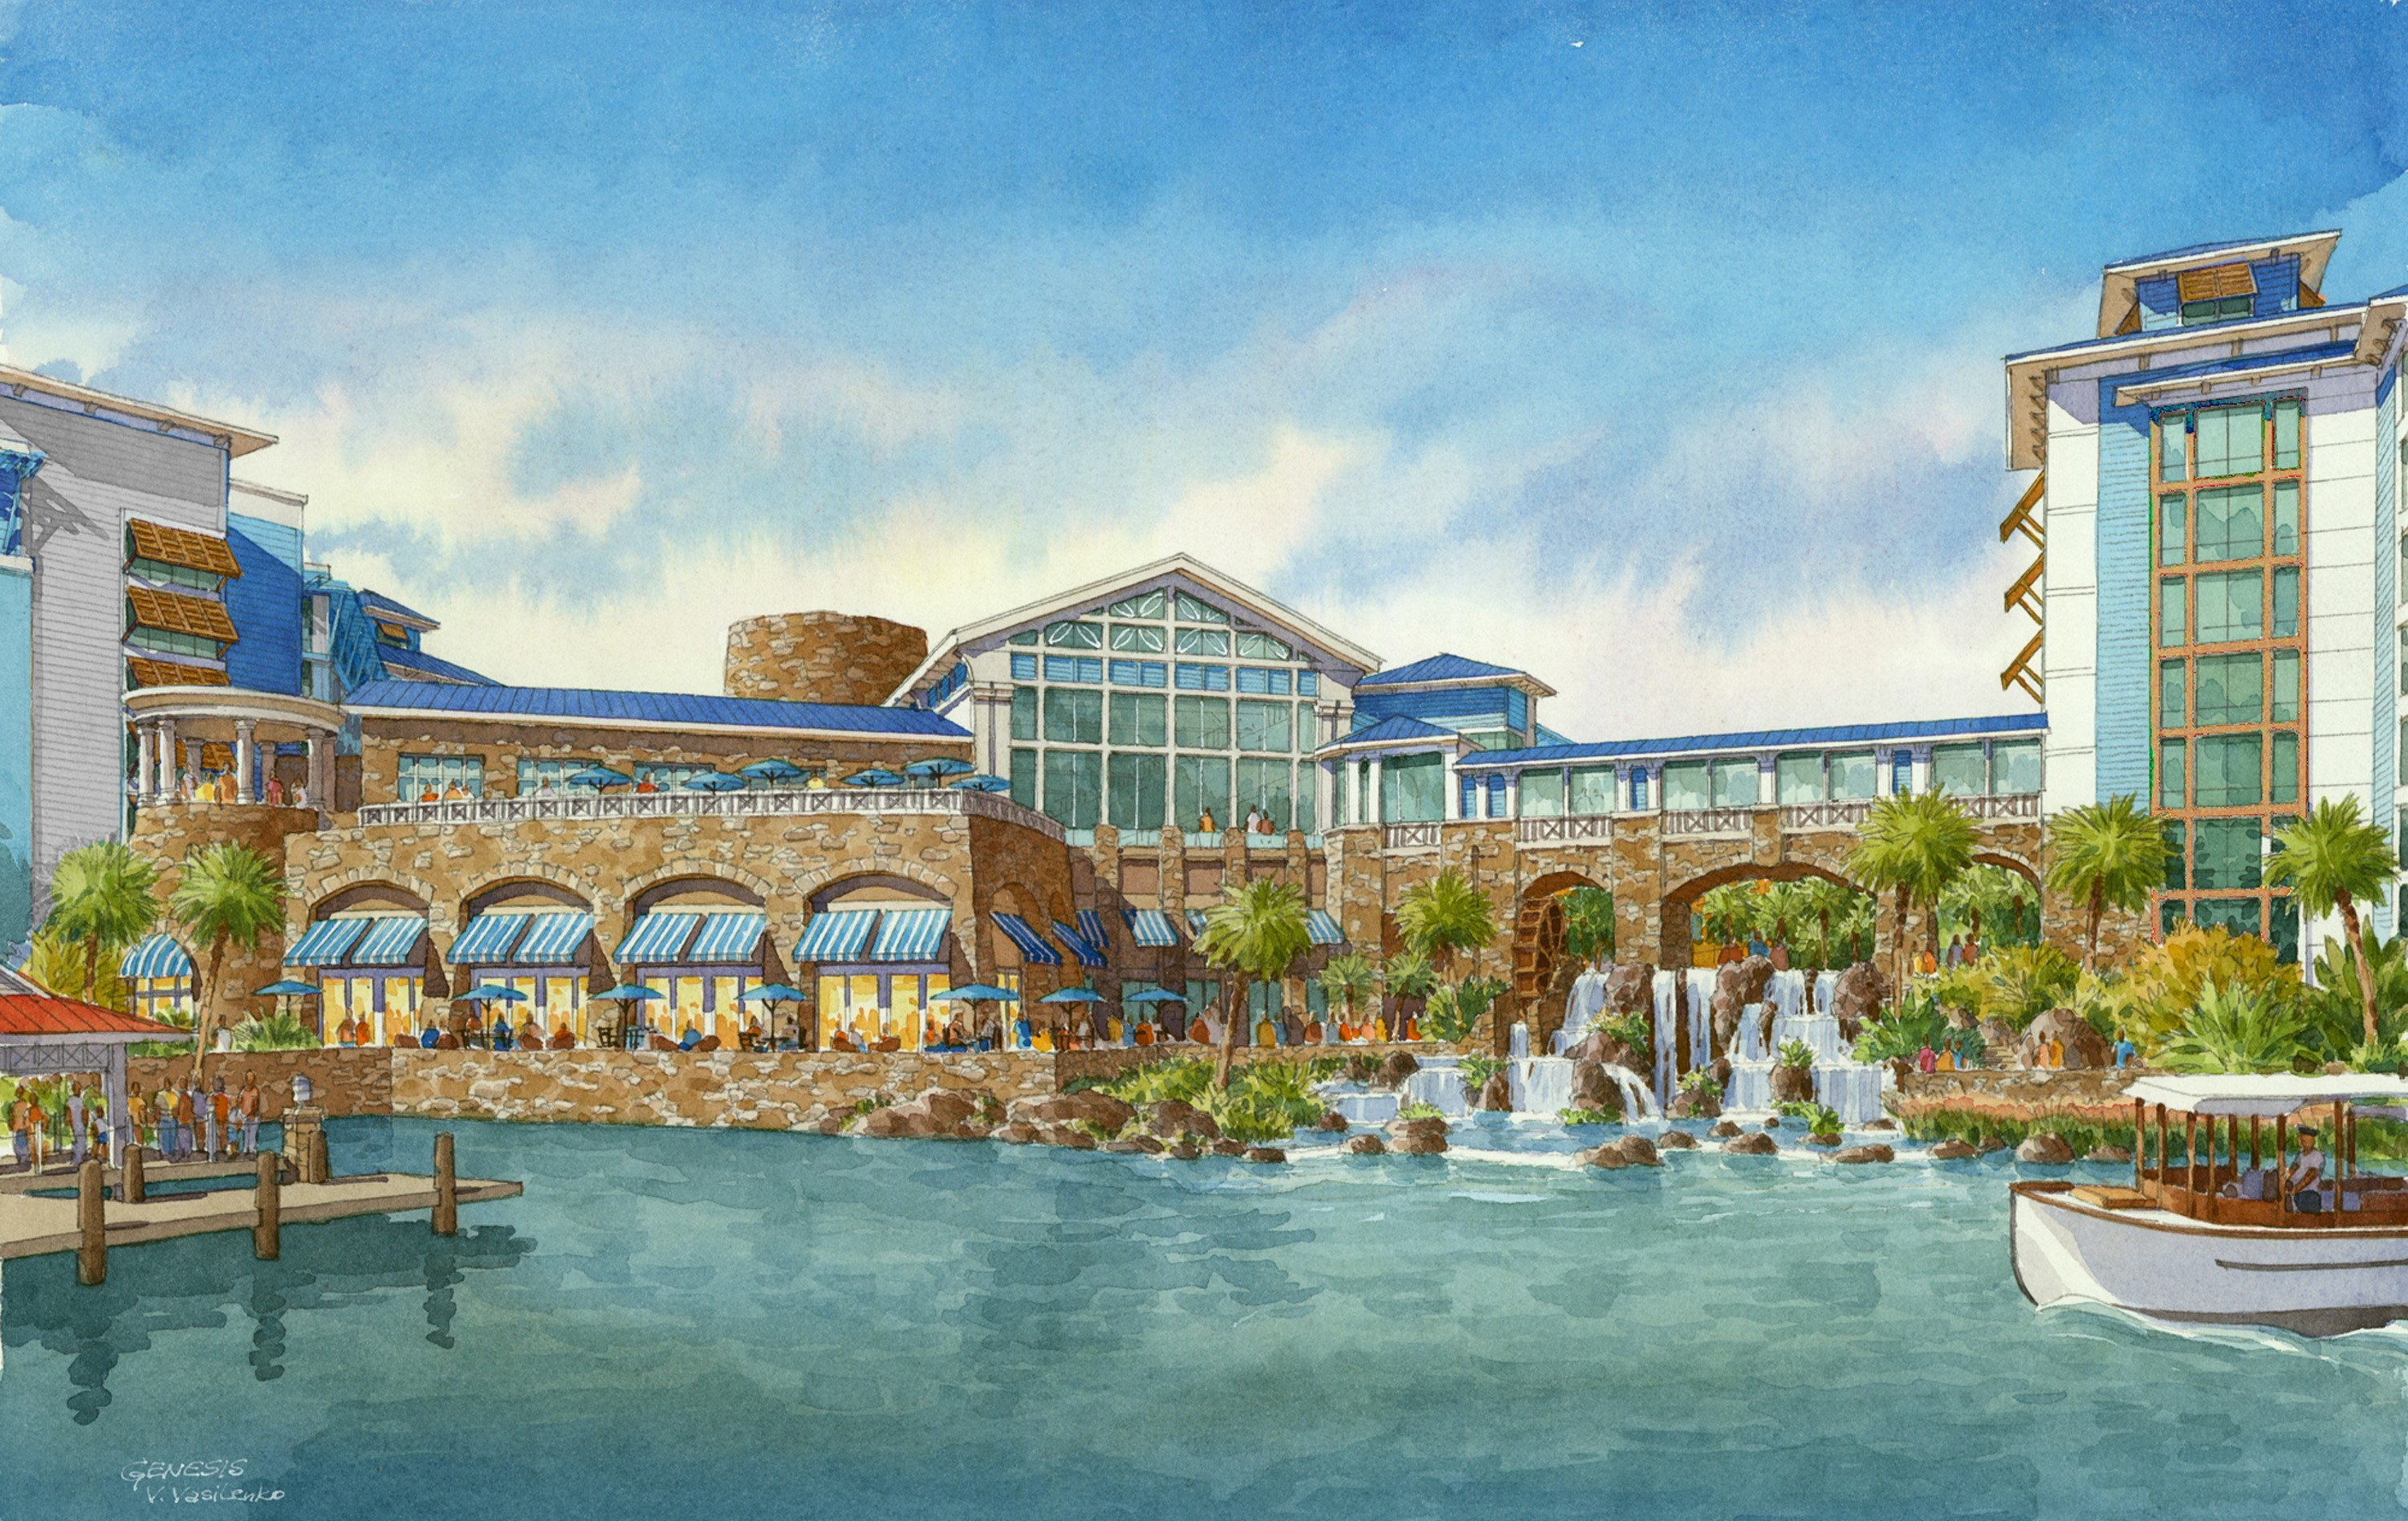 universal orlando submits plan for a sixth hotel hotel management